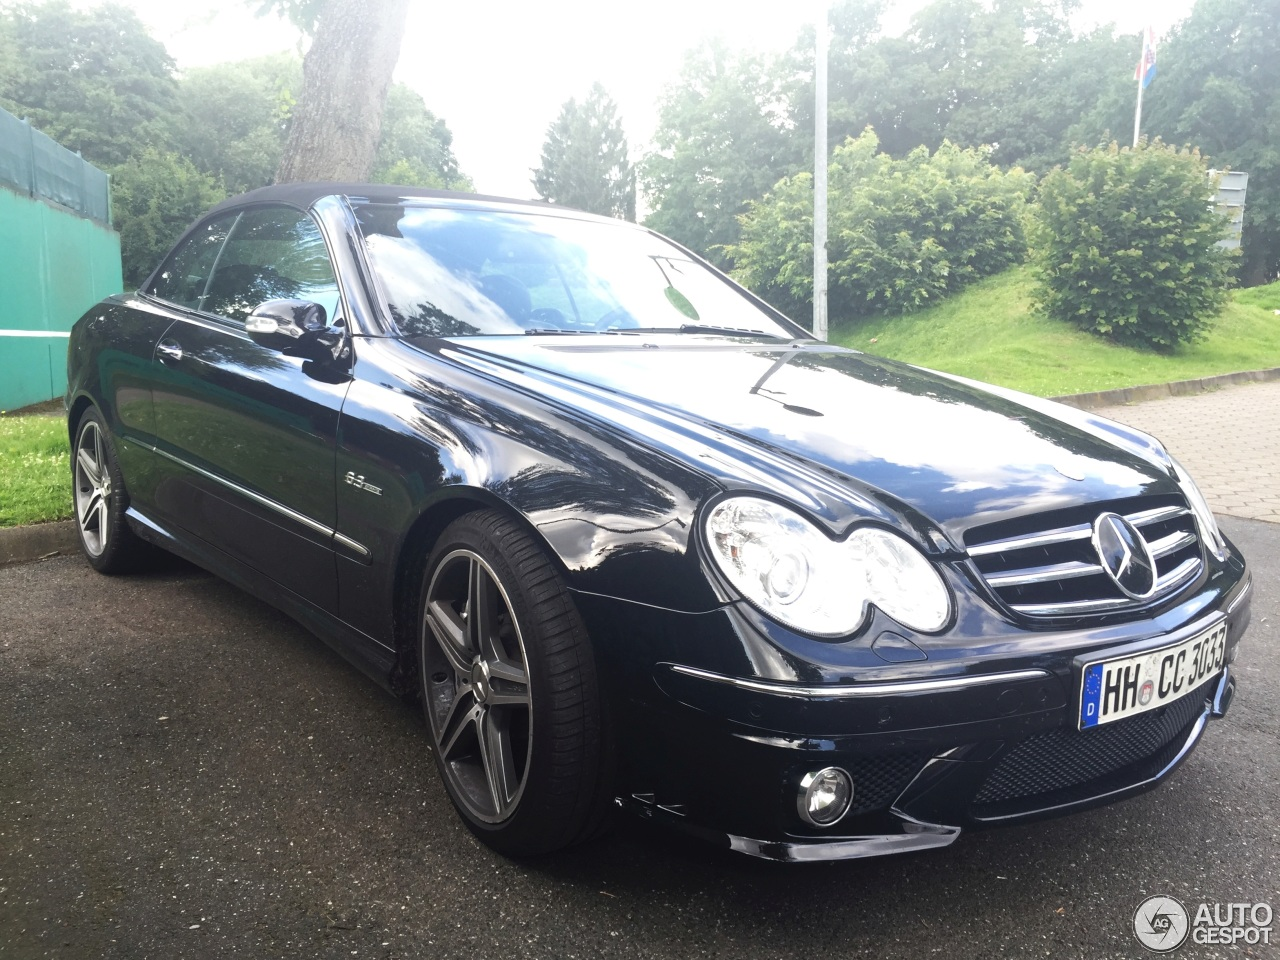 Mercedes benz clk 63 amg cabriolet 13 july 2016 autogespot for Mercedes benz clk 63